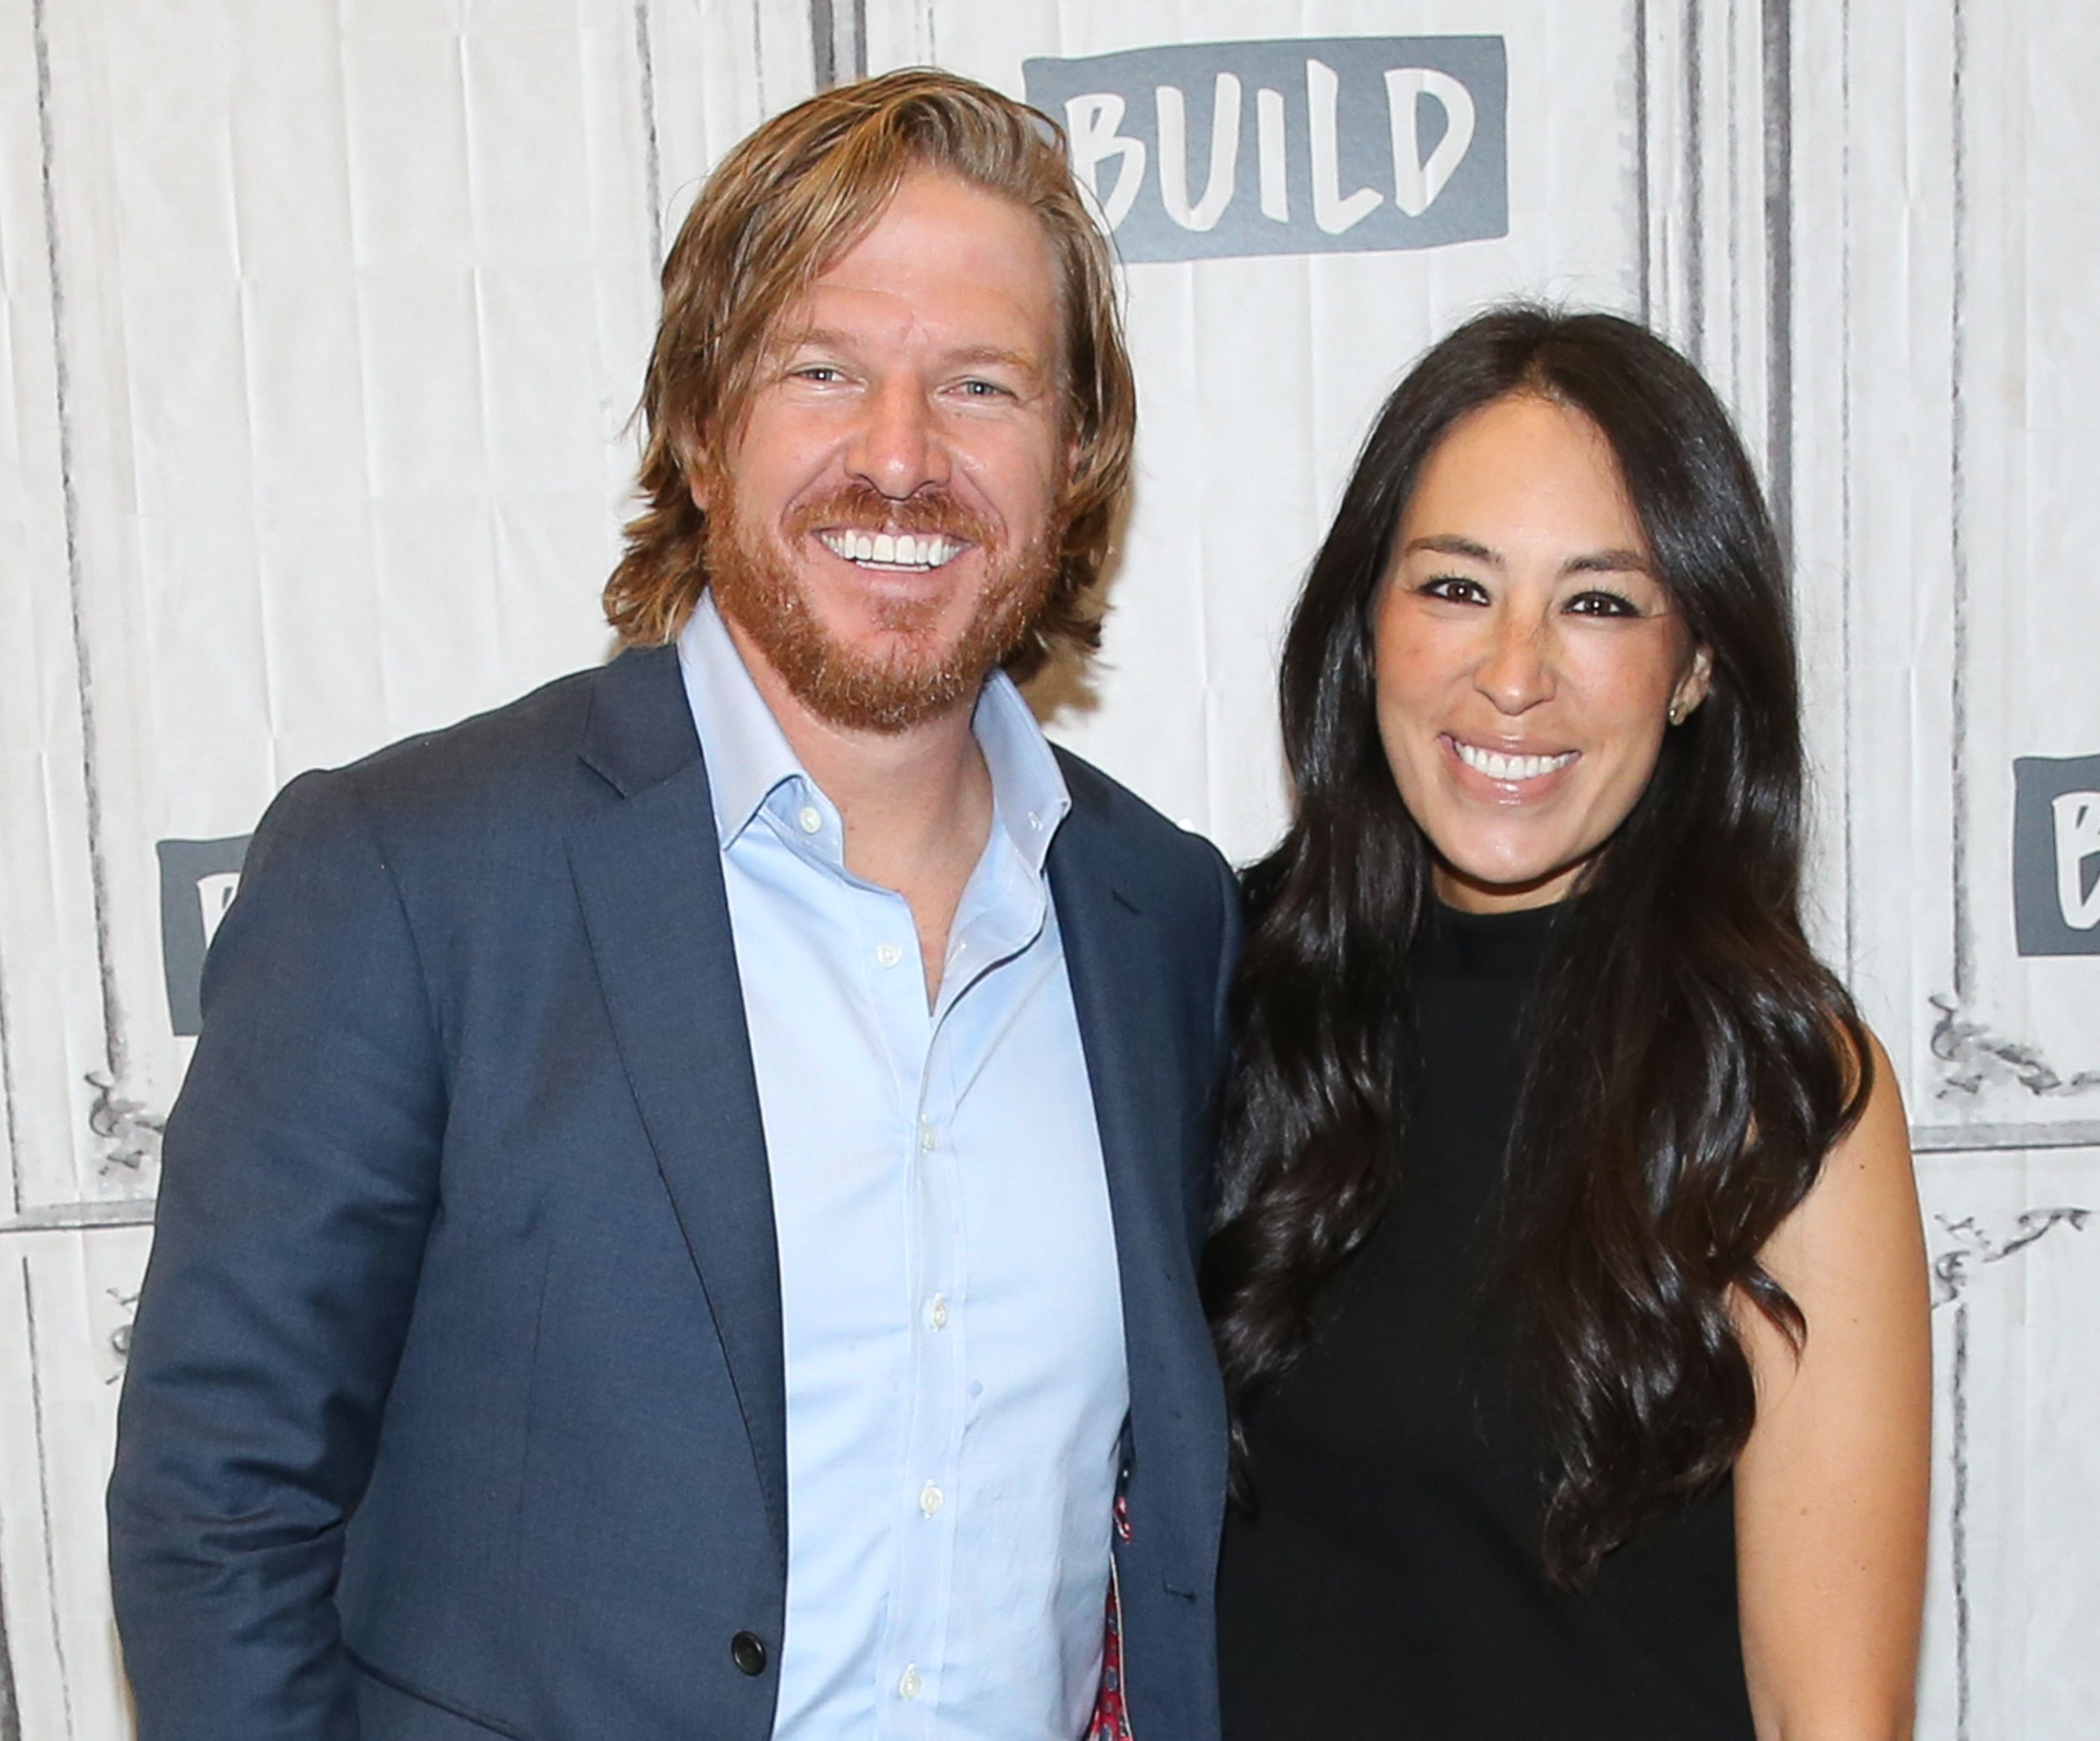 Chip Gaines and Joanna Gaines attend the Build Series at Build Studio on October 18, 2017 in New York City. | Photo: Getty Images